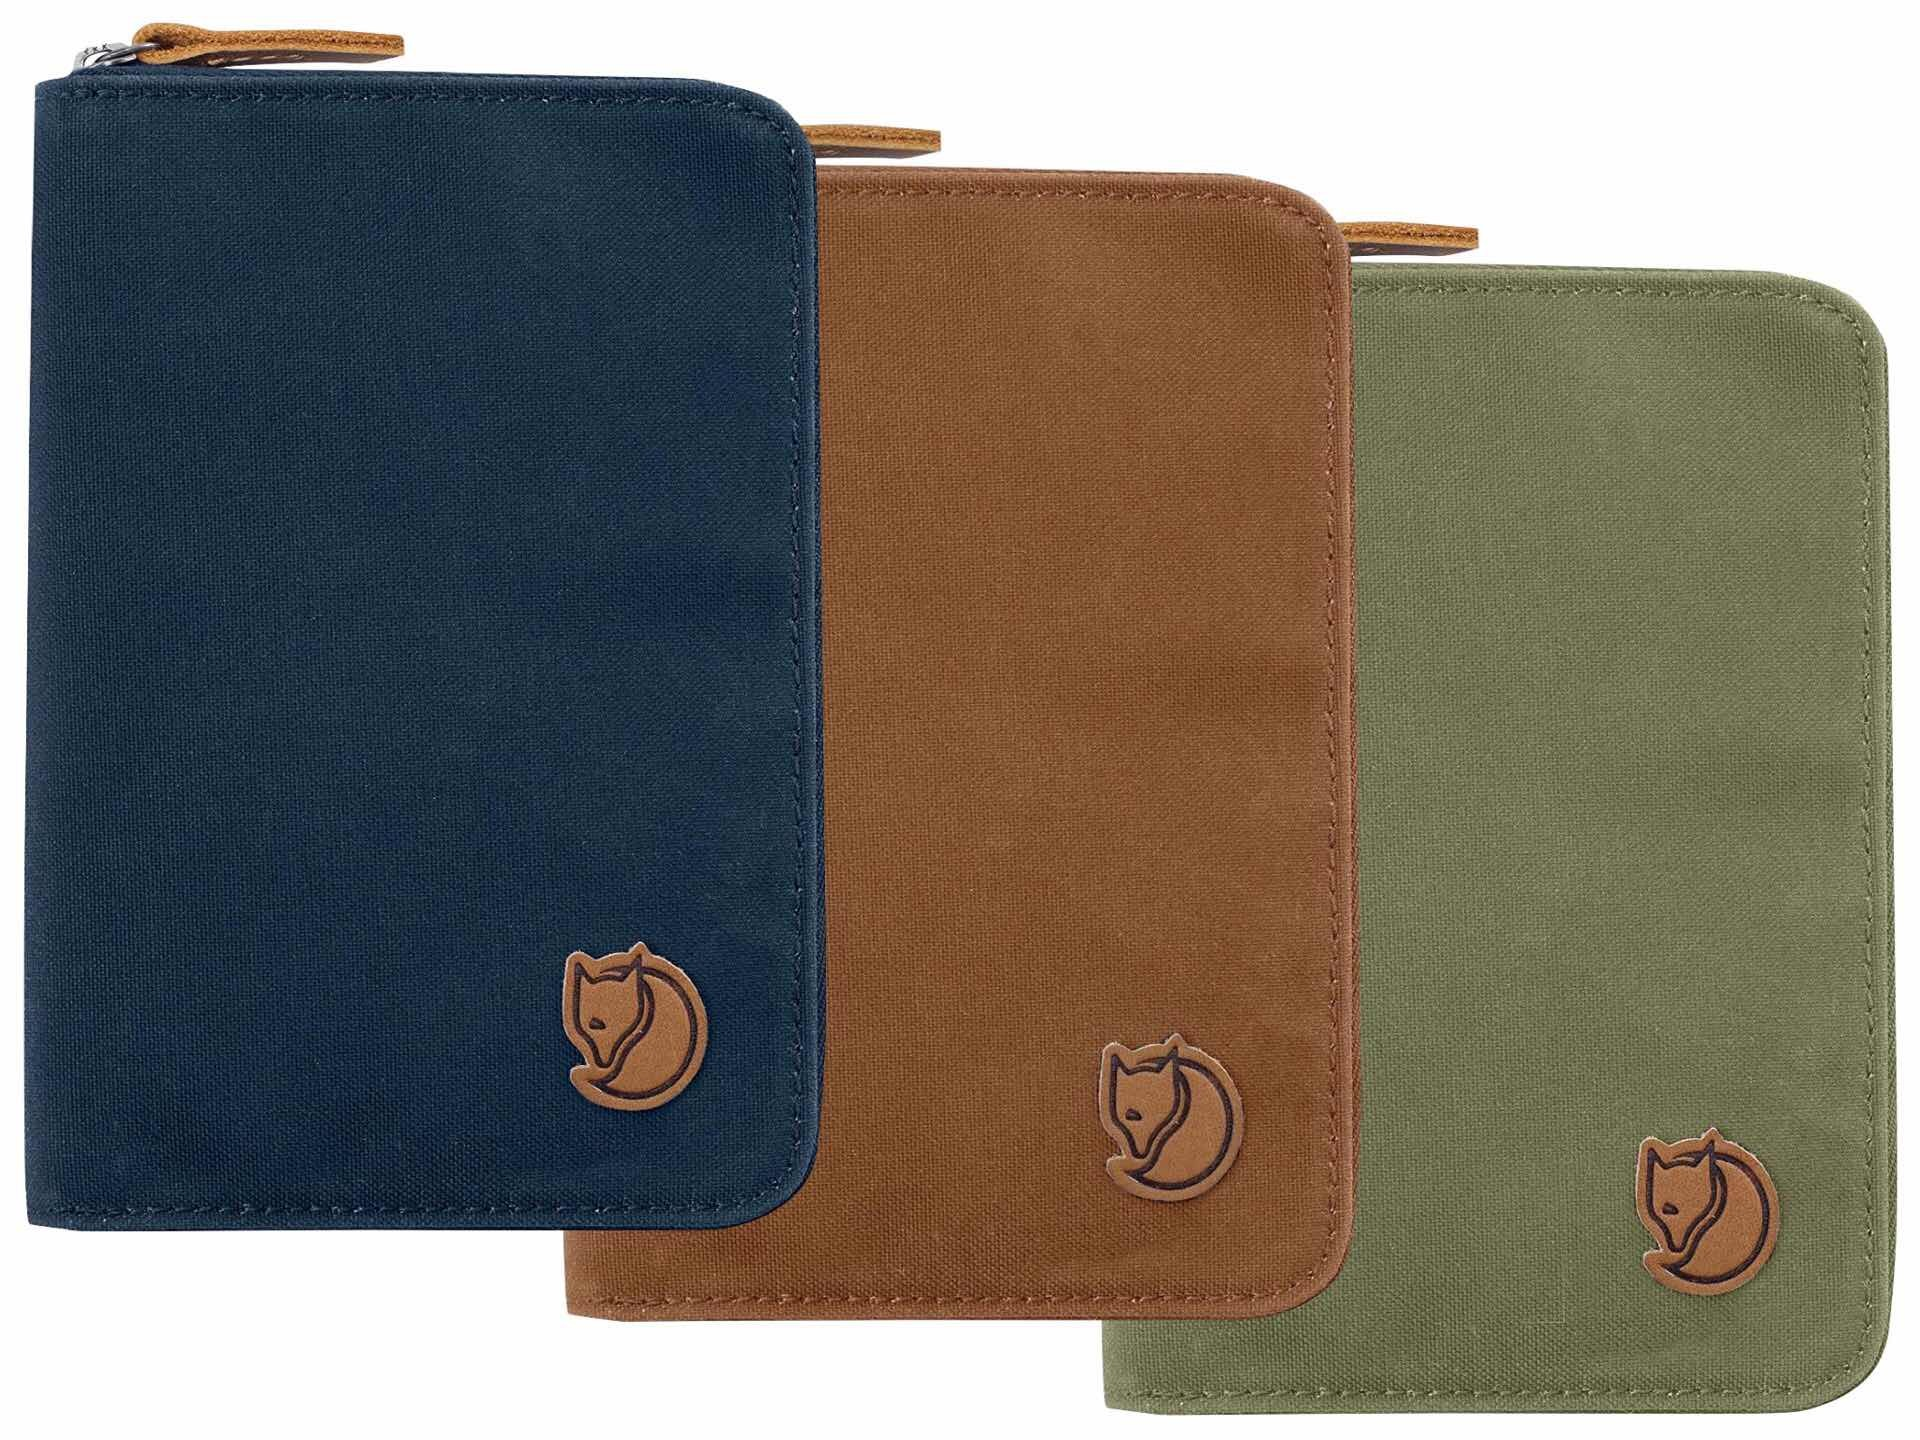 Fjällräven passport wallet. ($60, available in a variety of colors)